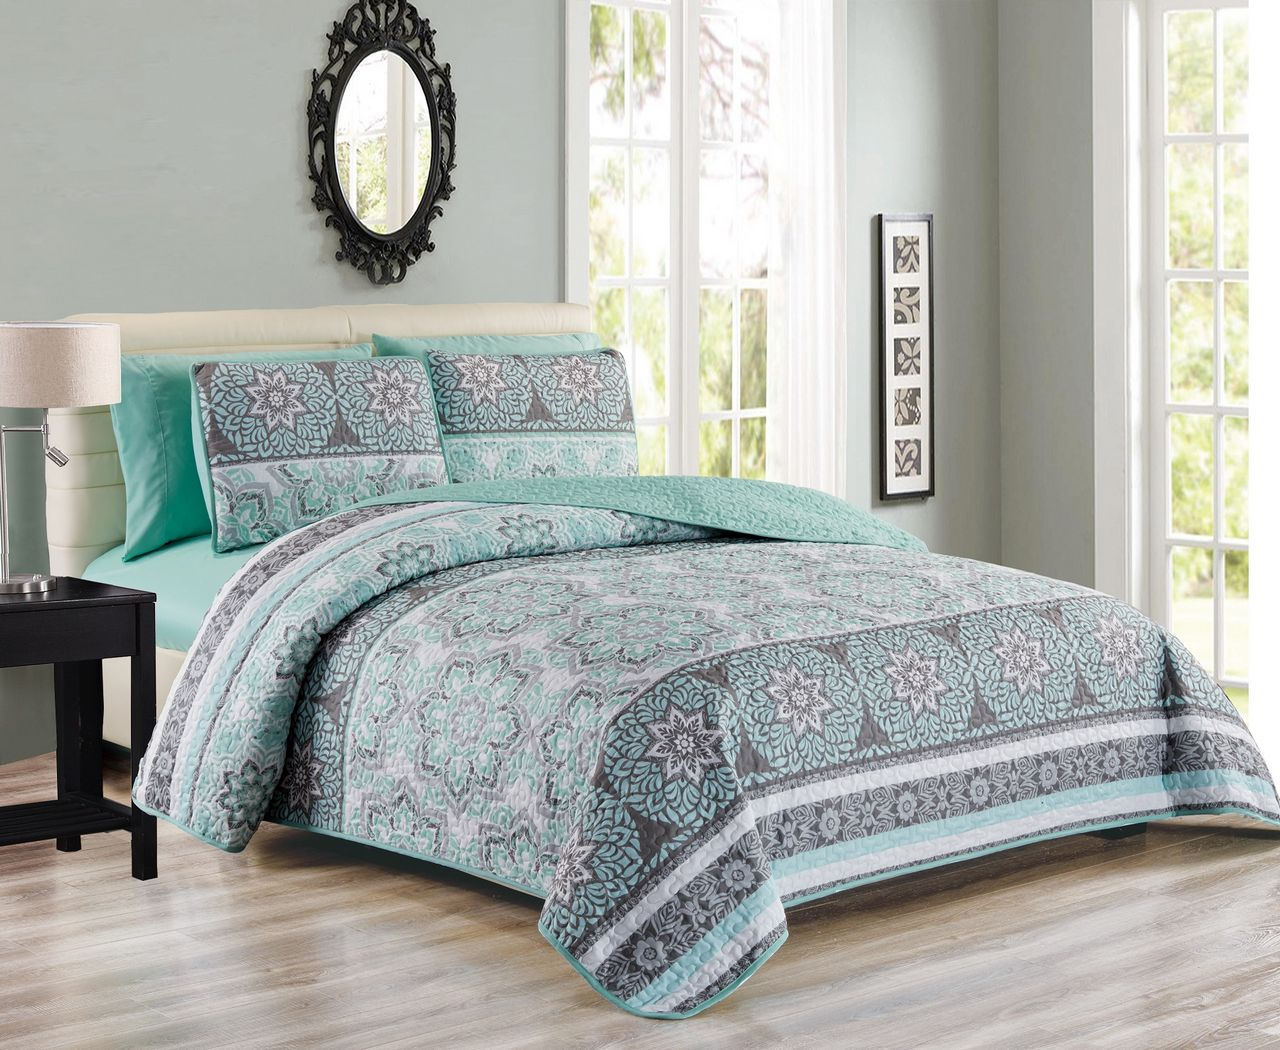 6 Piece Floral Bedspread//Quilt with Sheet Set